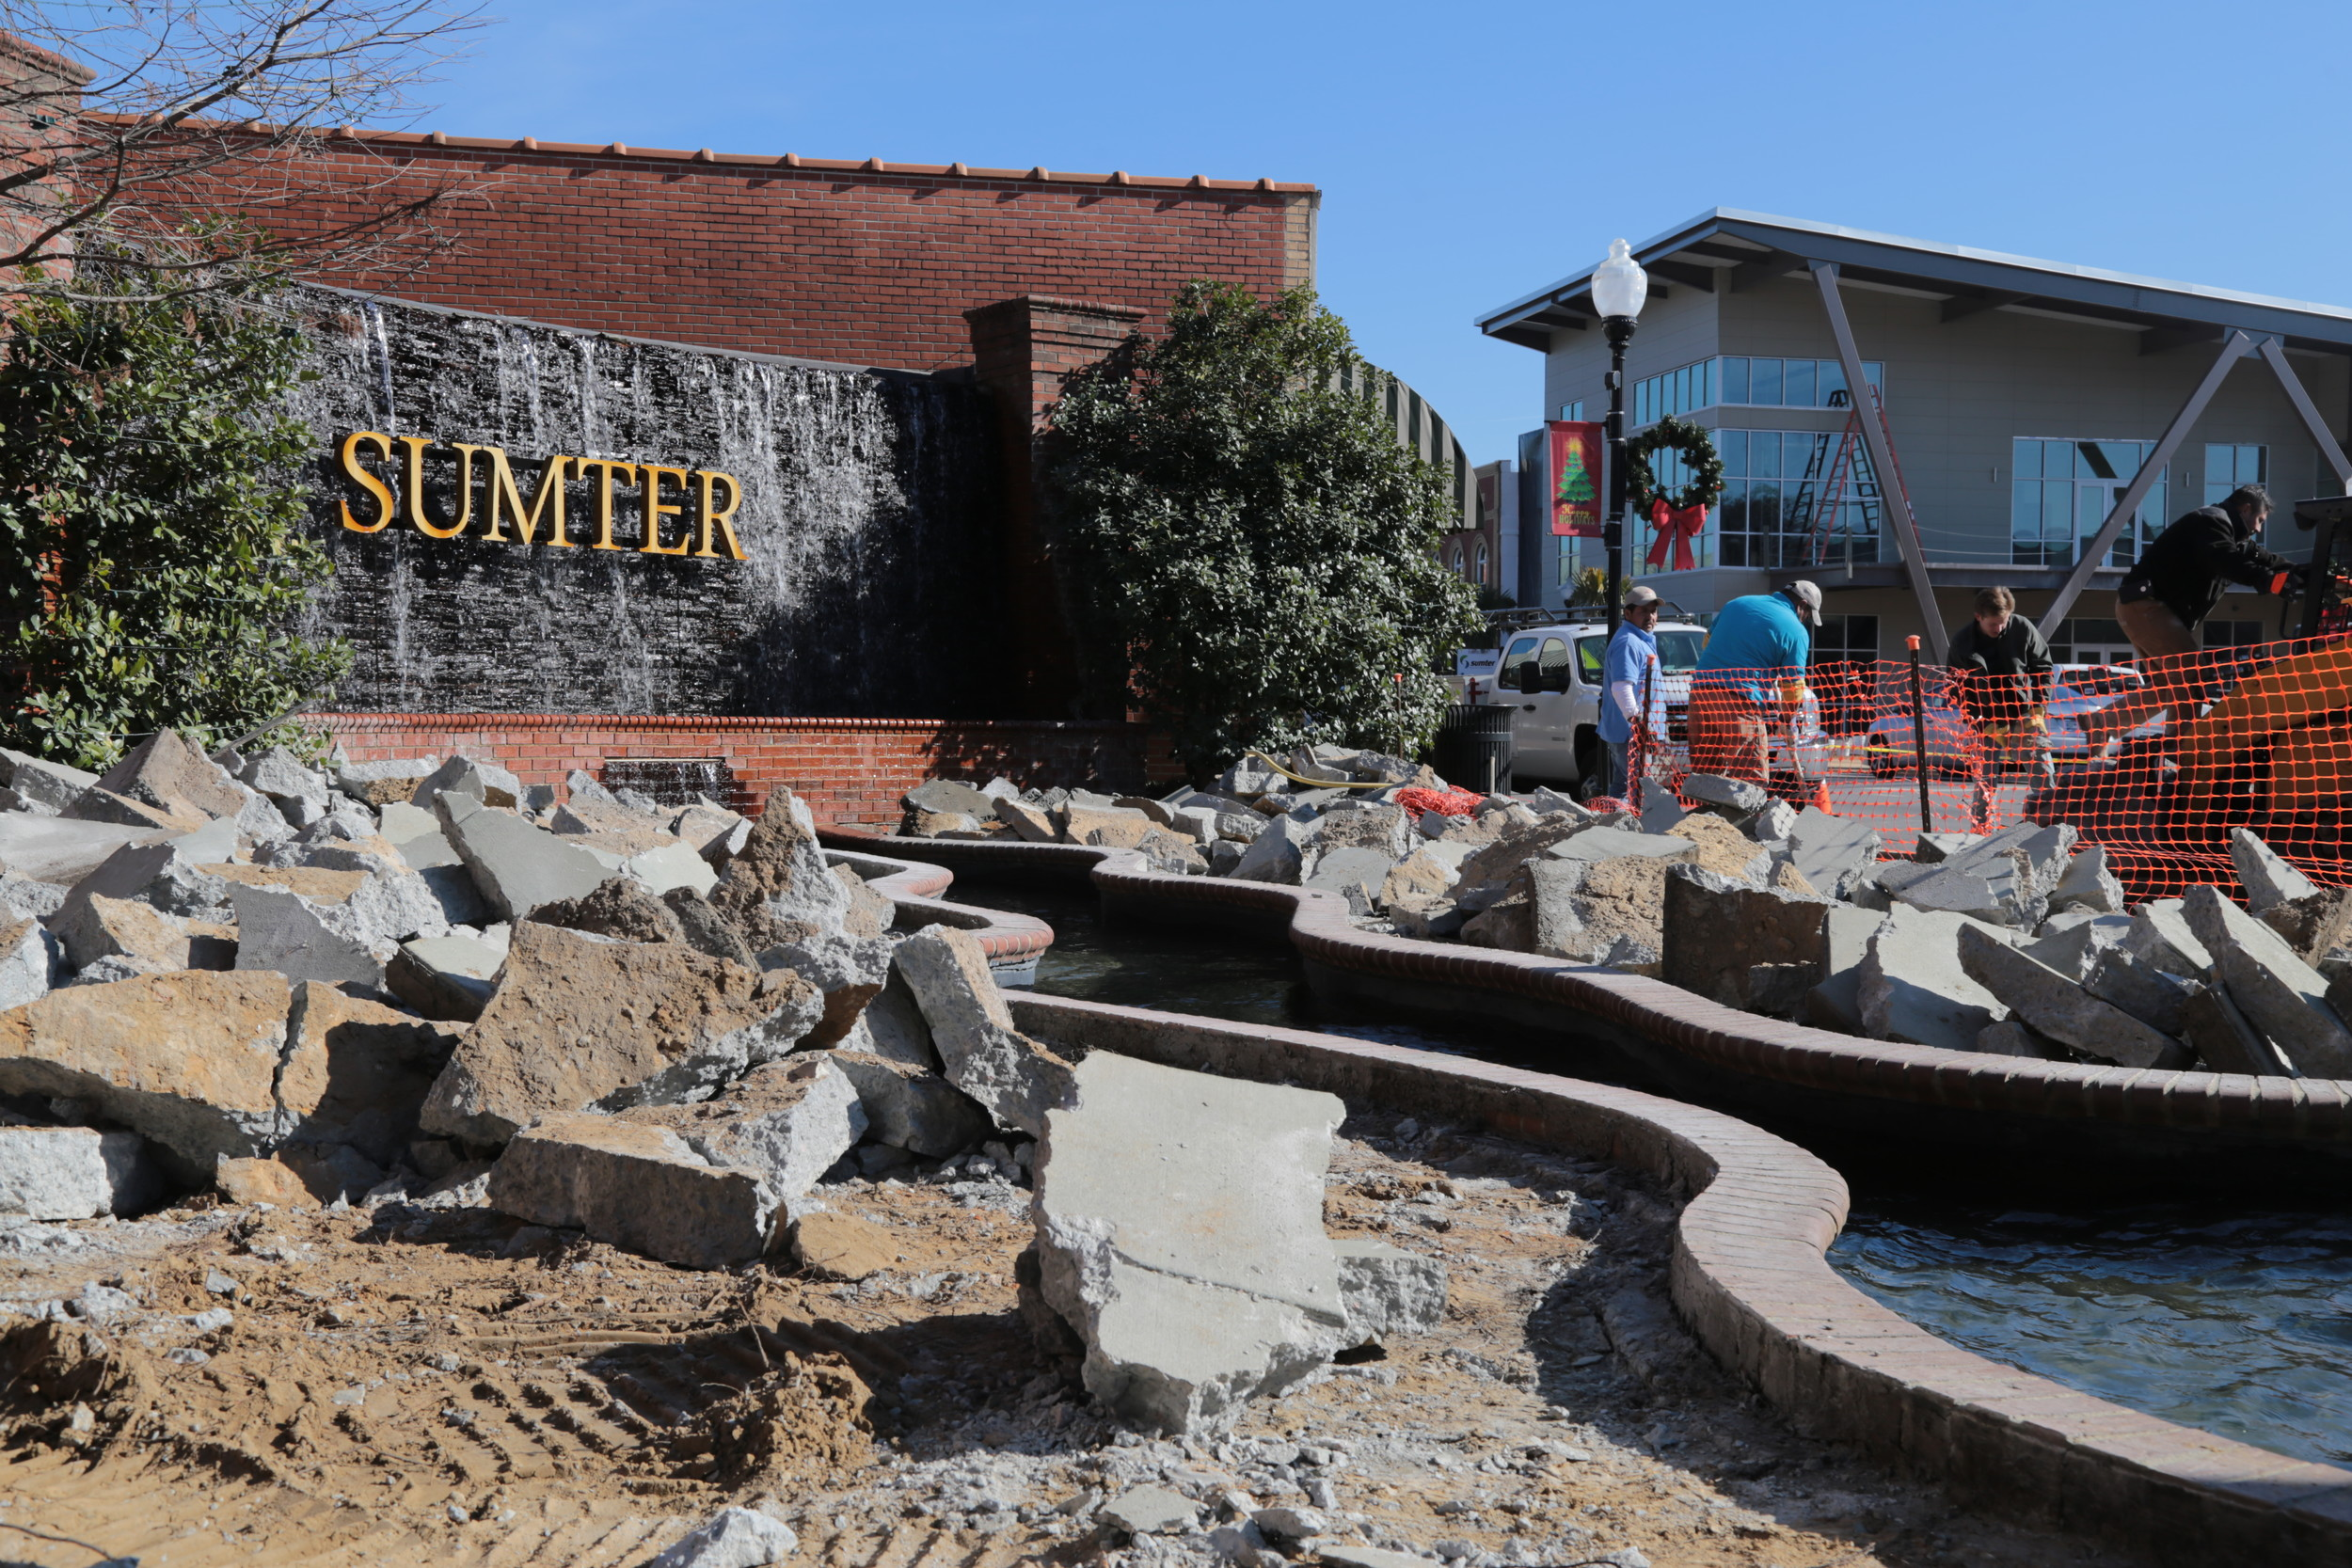 The Graham family is updating the display on the corner of North Main and East Liberty